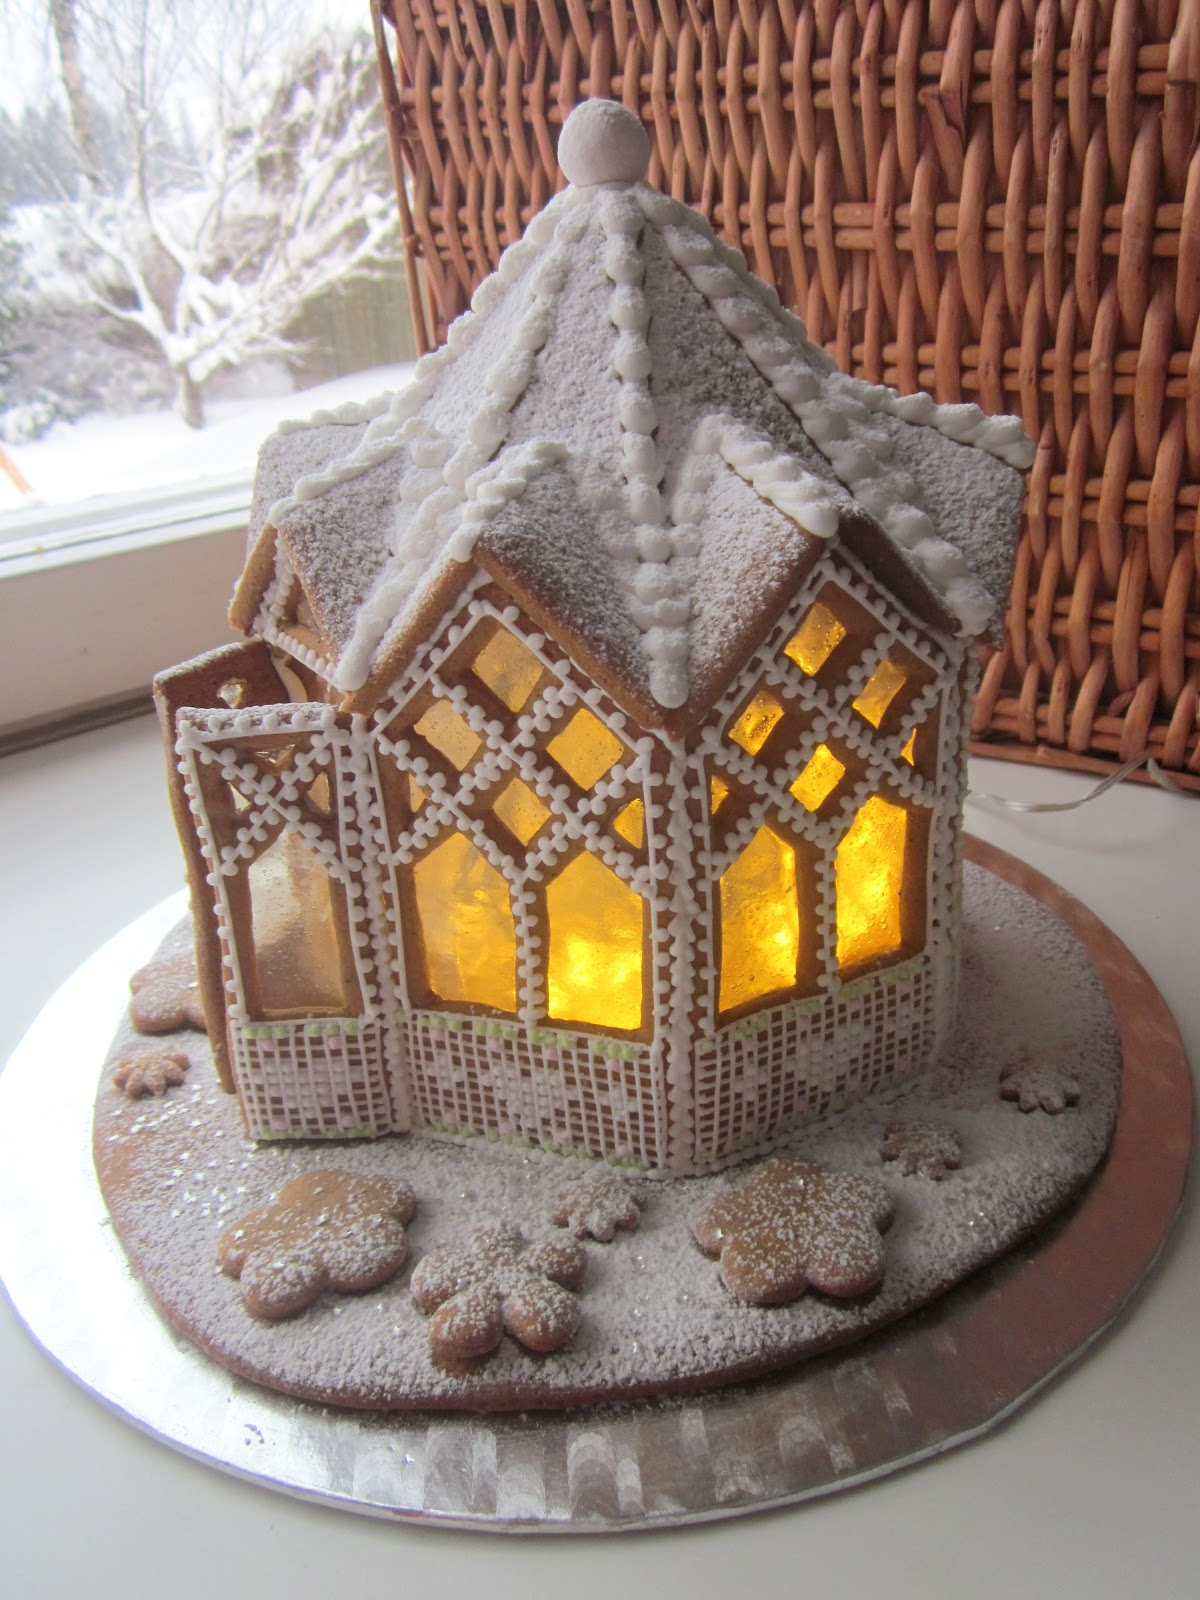 17 Elaborate Gingerbread Houses to Drool Over | Mom Spark - A Trendy Blog for Moms - Mom Blogger